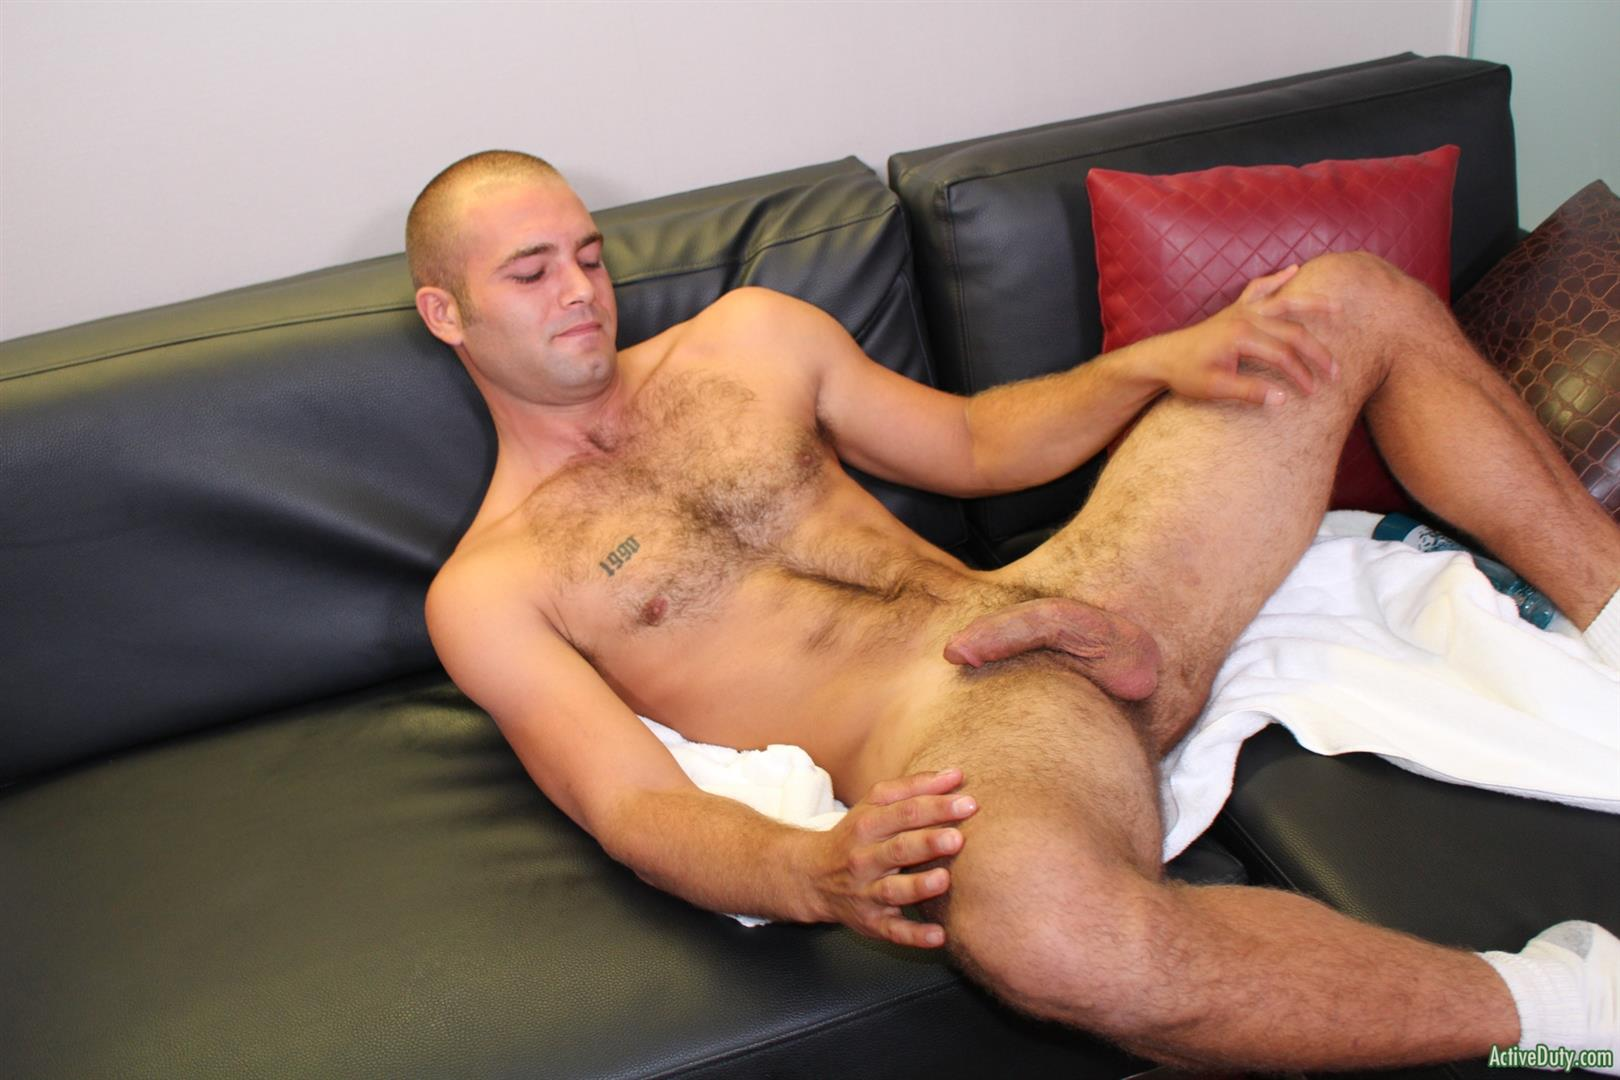 Active-Duty-Sean-Naked-Army-Soldier-With-A-Thick-Cock-Amateur-Gay-Porn-12 27 Year Old Straight Army Soldier Jerks His Big Thick Cock